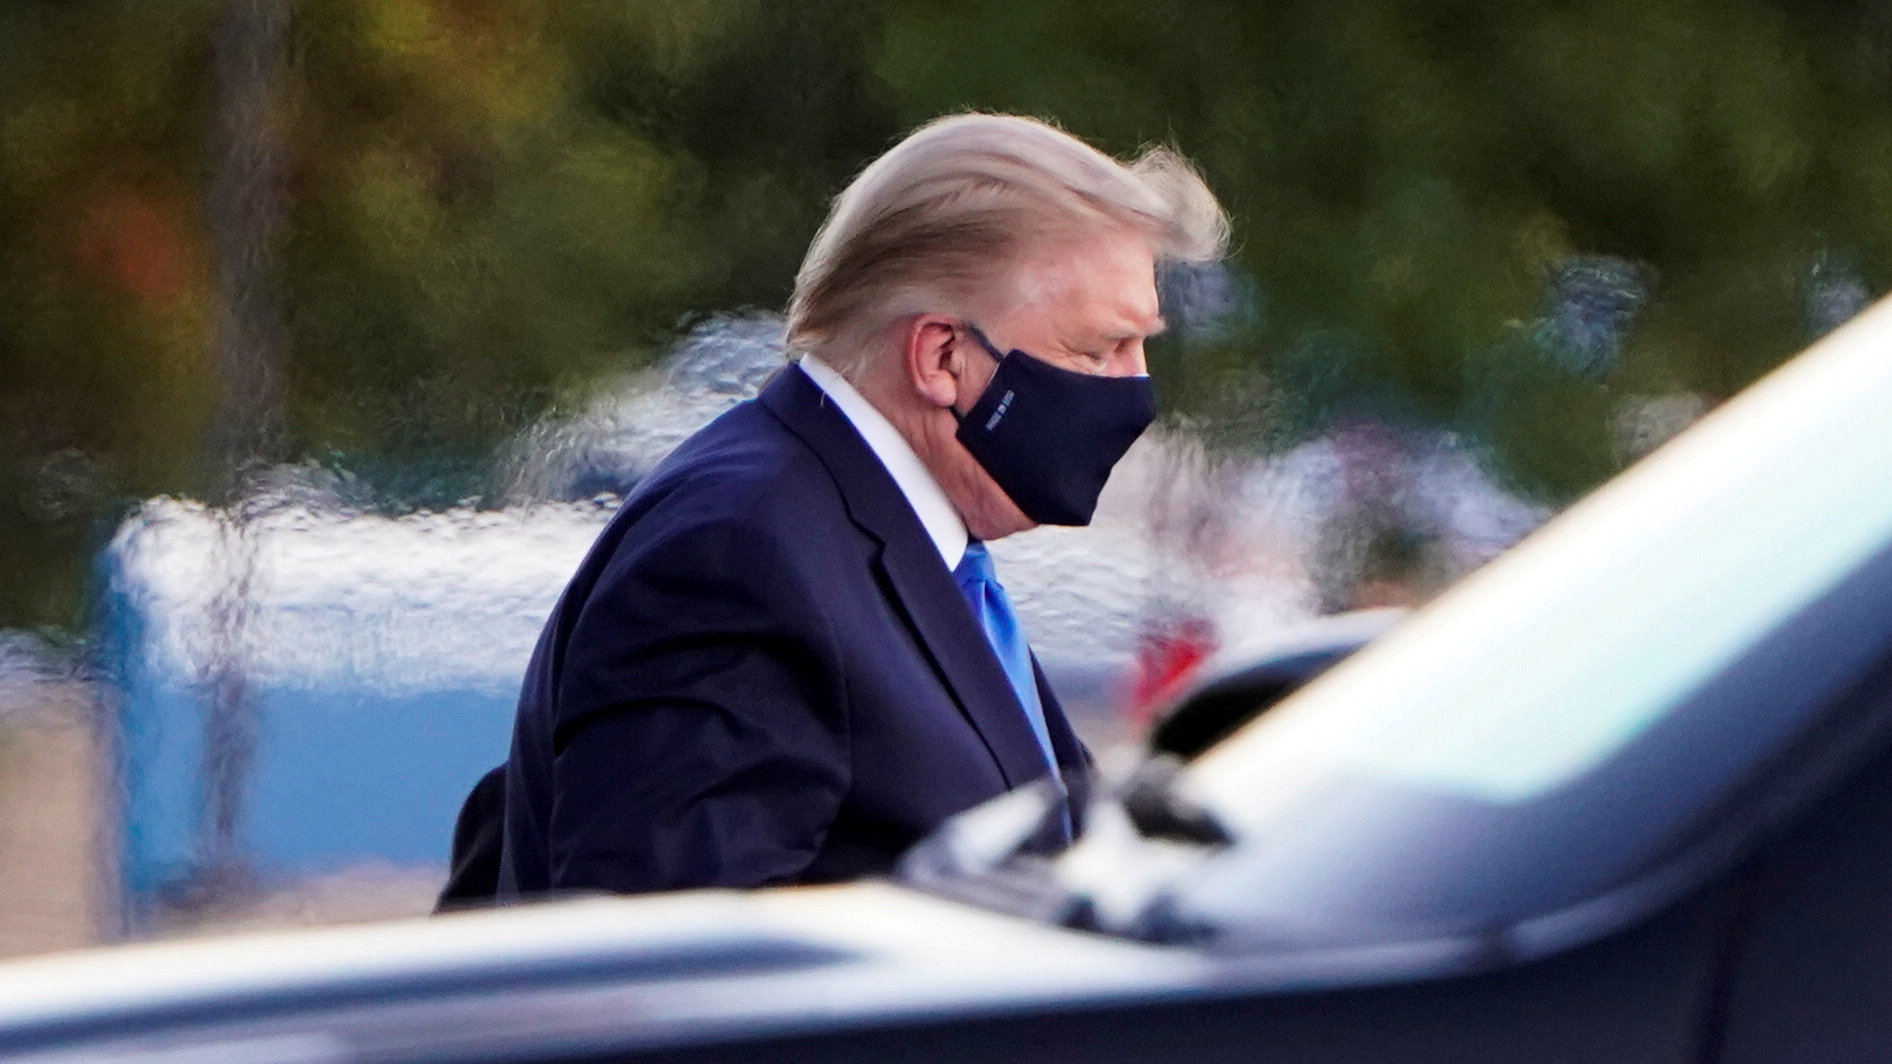 Trump leaves hospital for 'surprise visit' as COVID-19 treatment continues